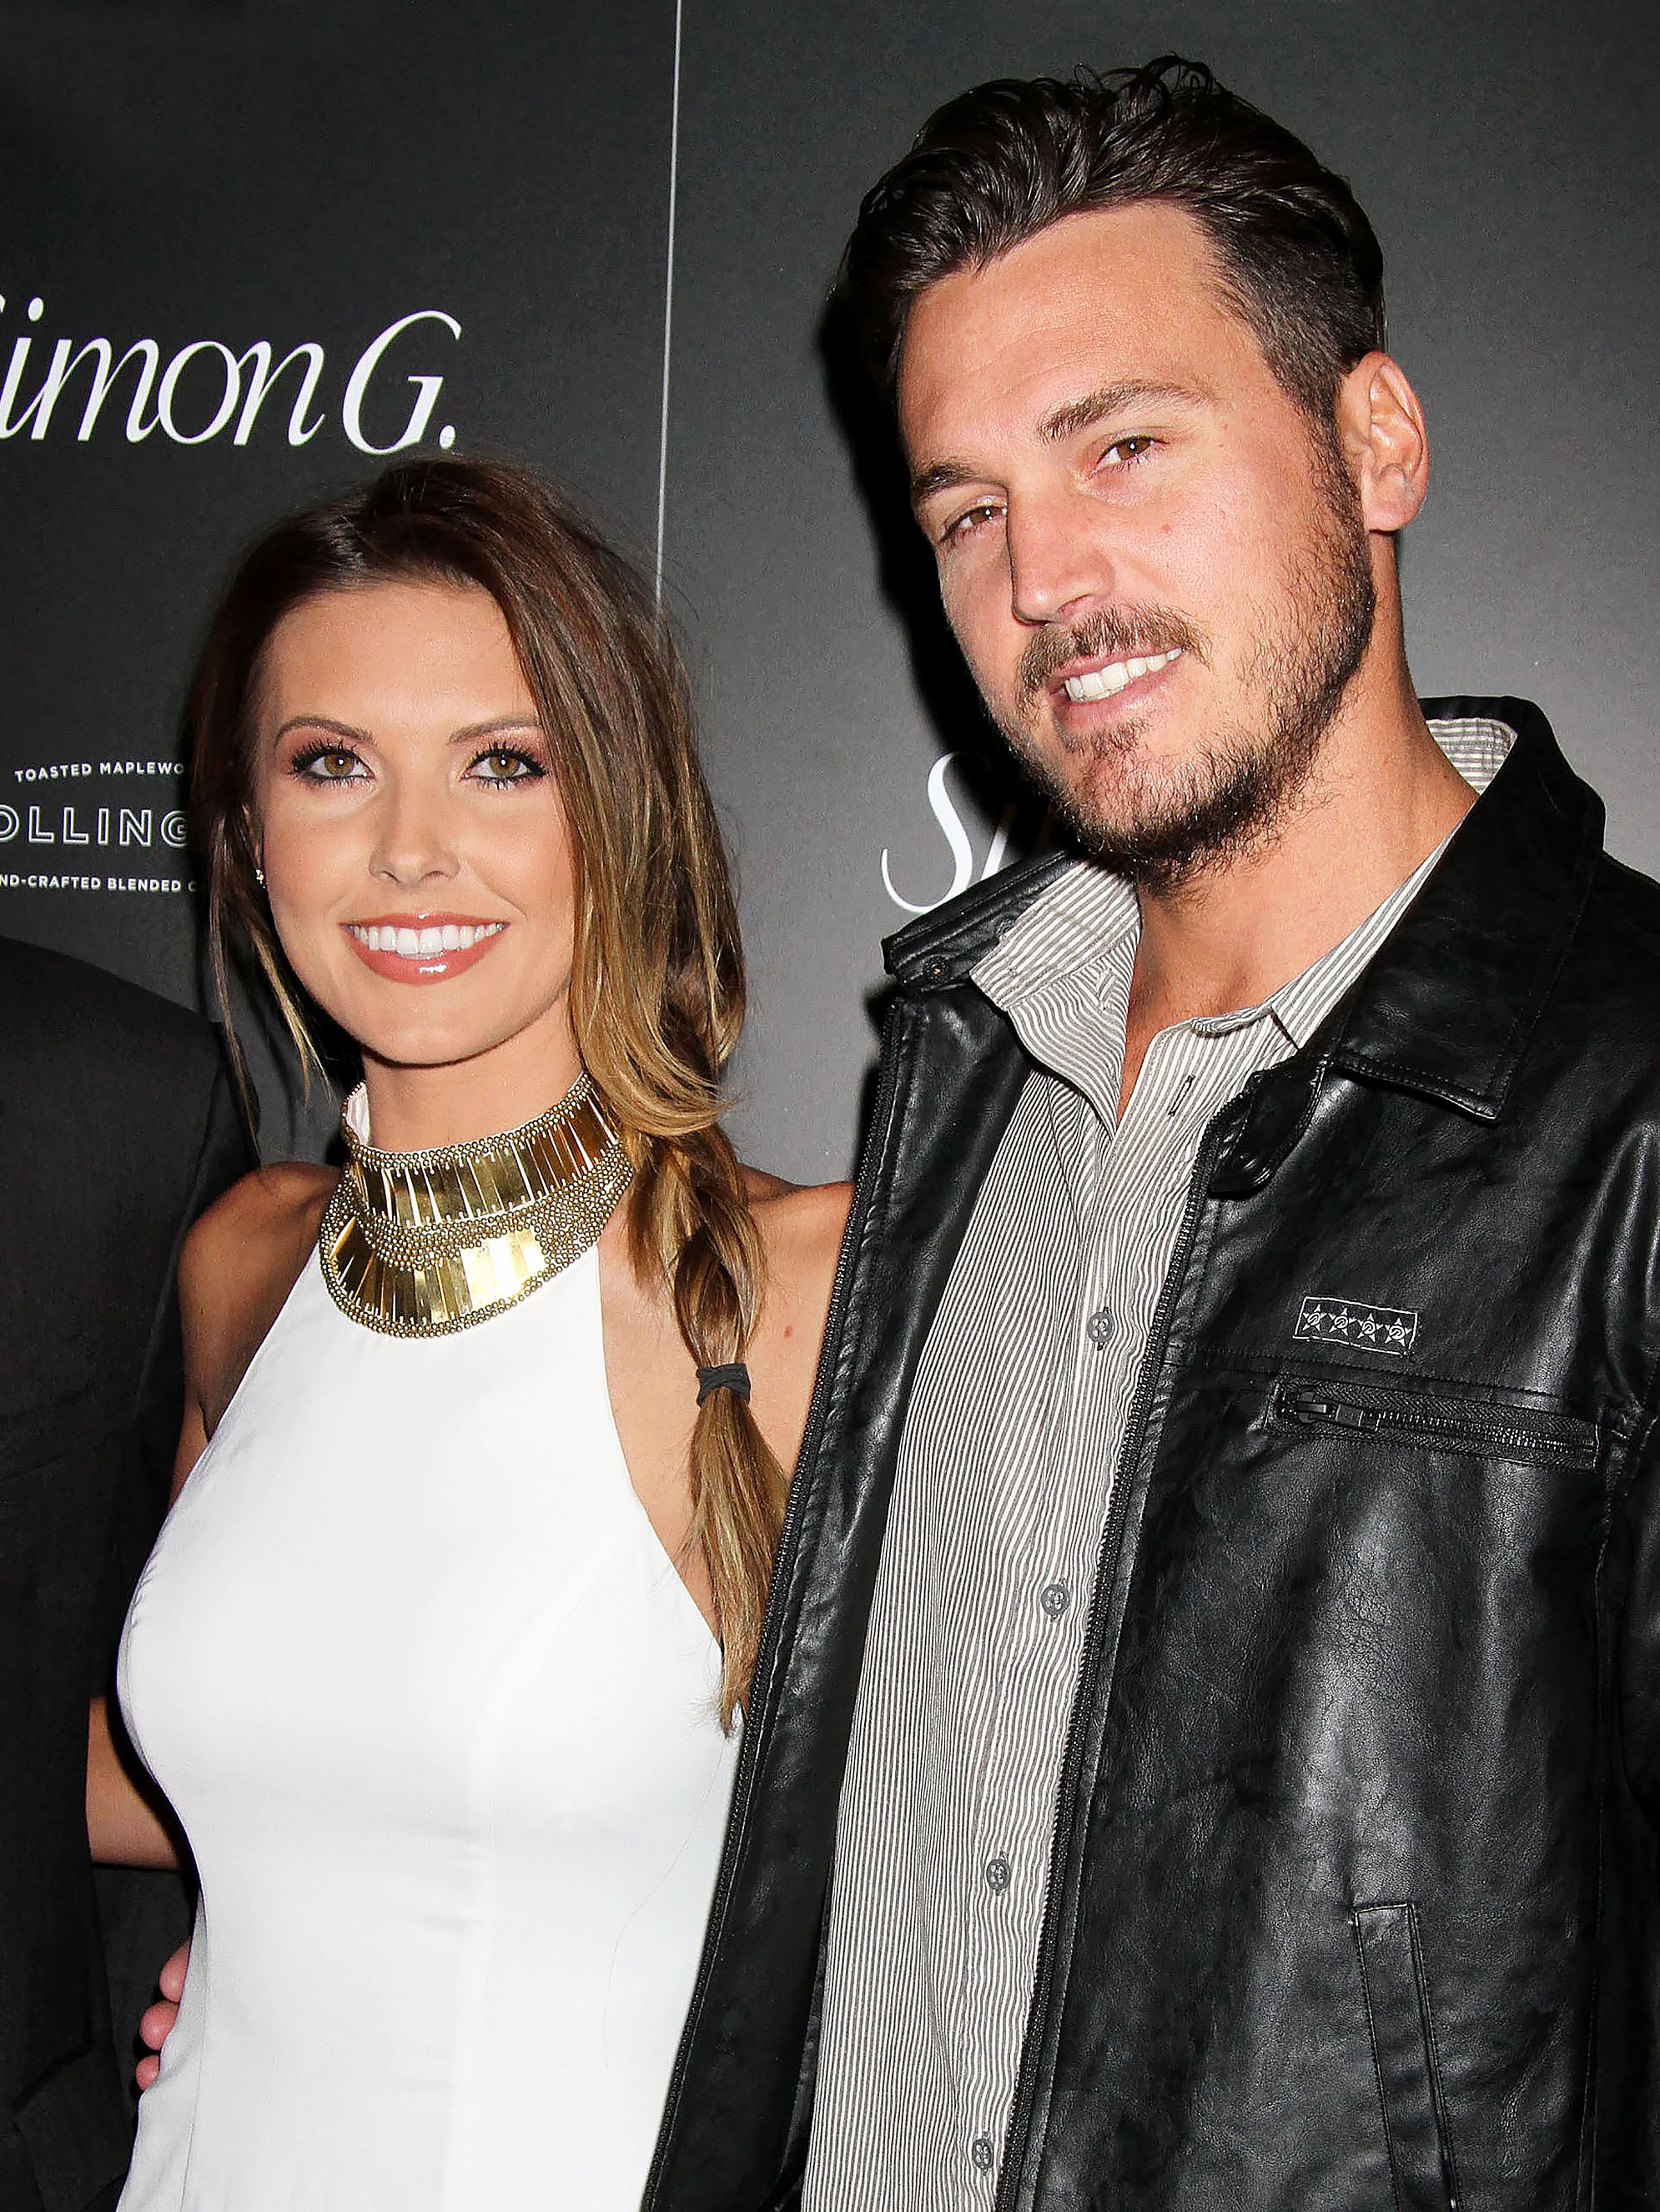 Audrina Patridge's Ex Corey Bohan Requests Child Support After Losing Job